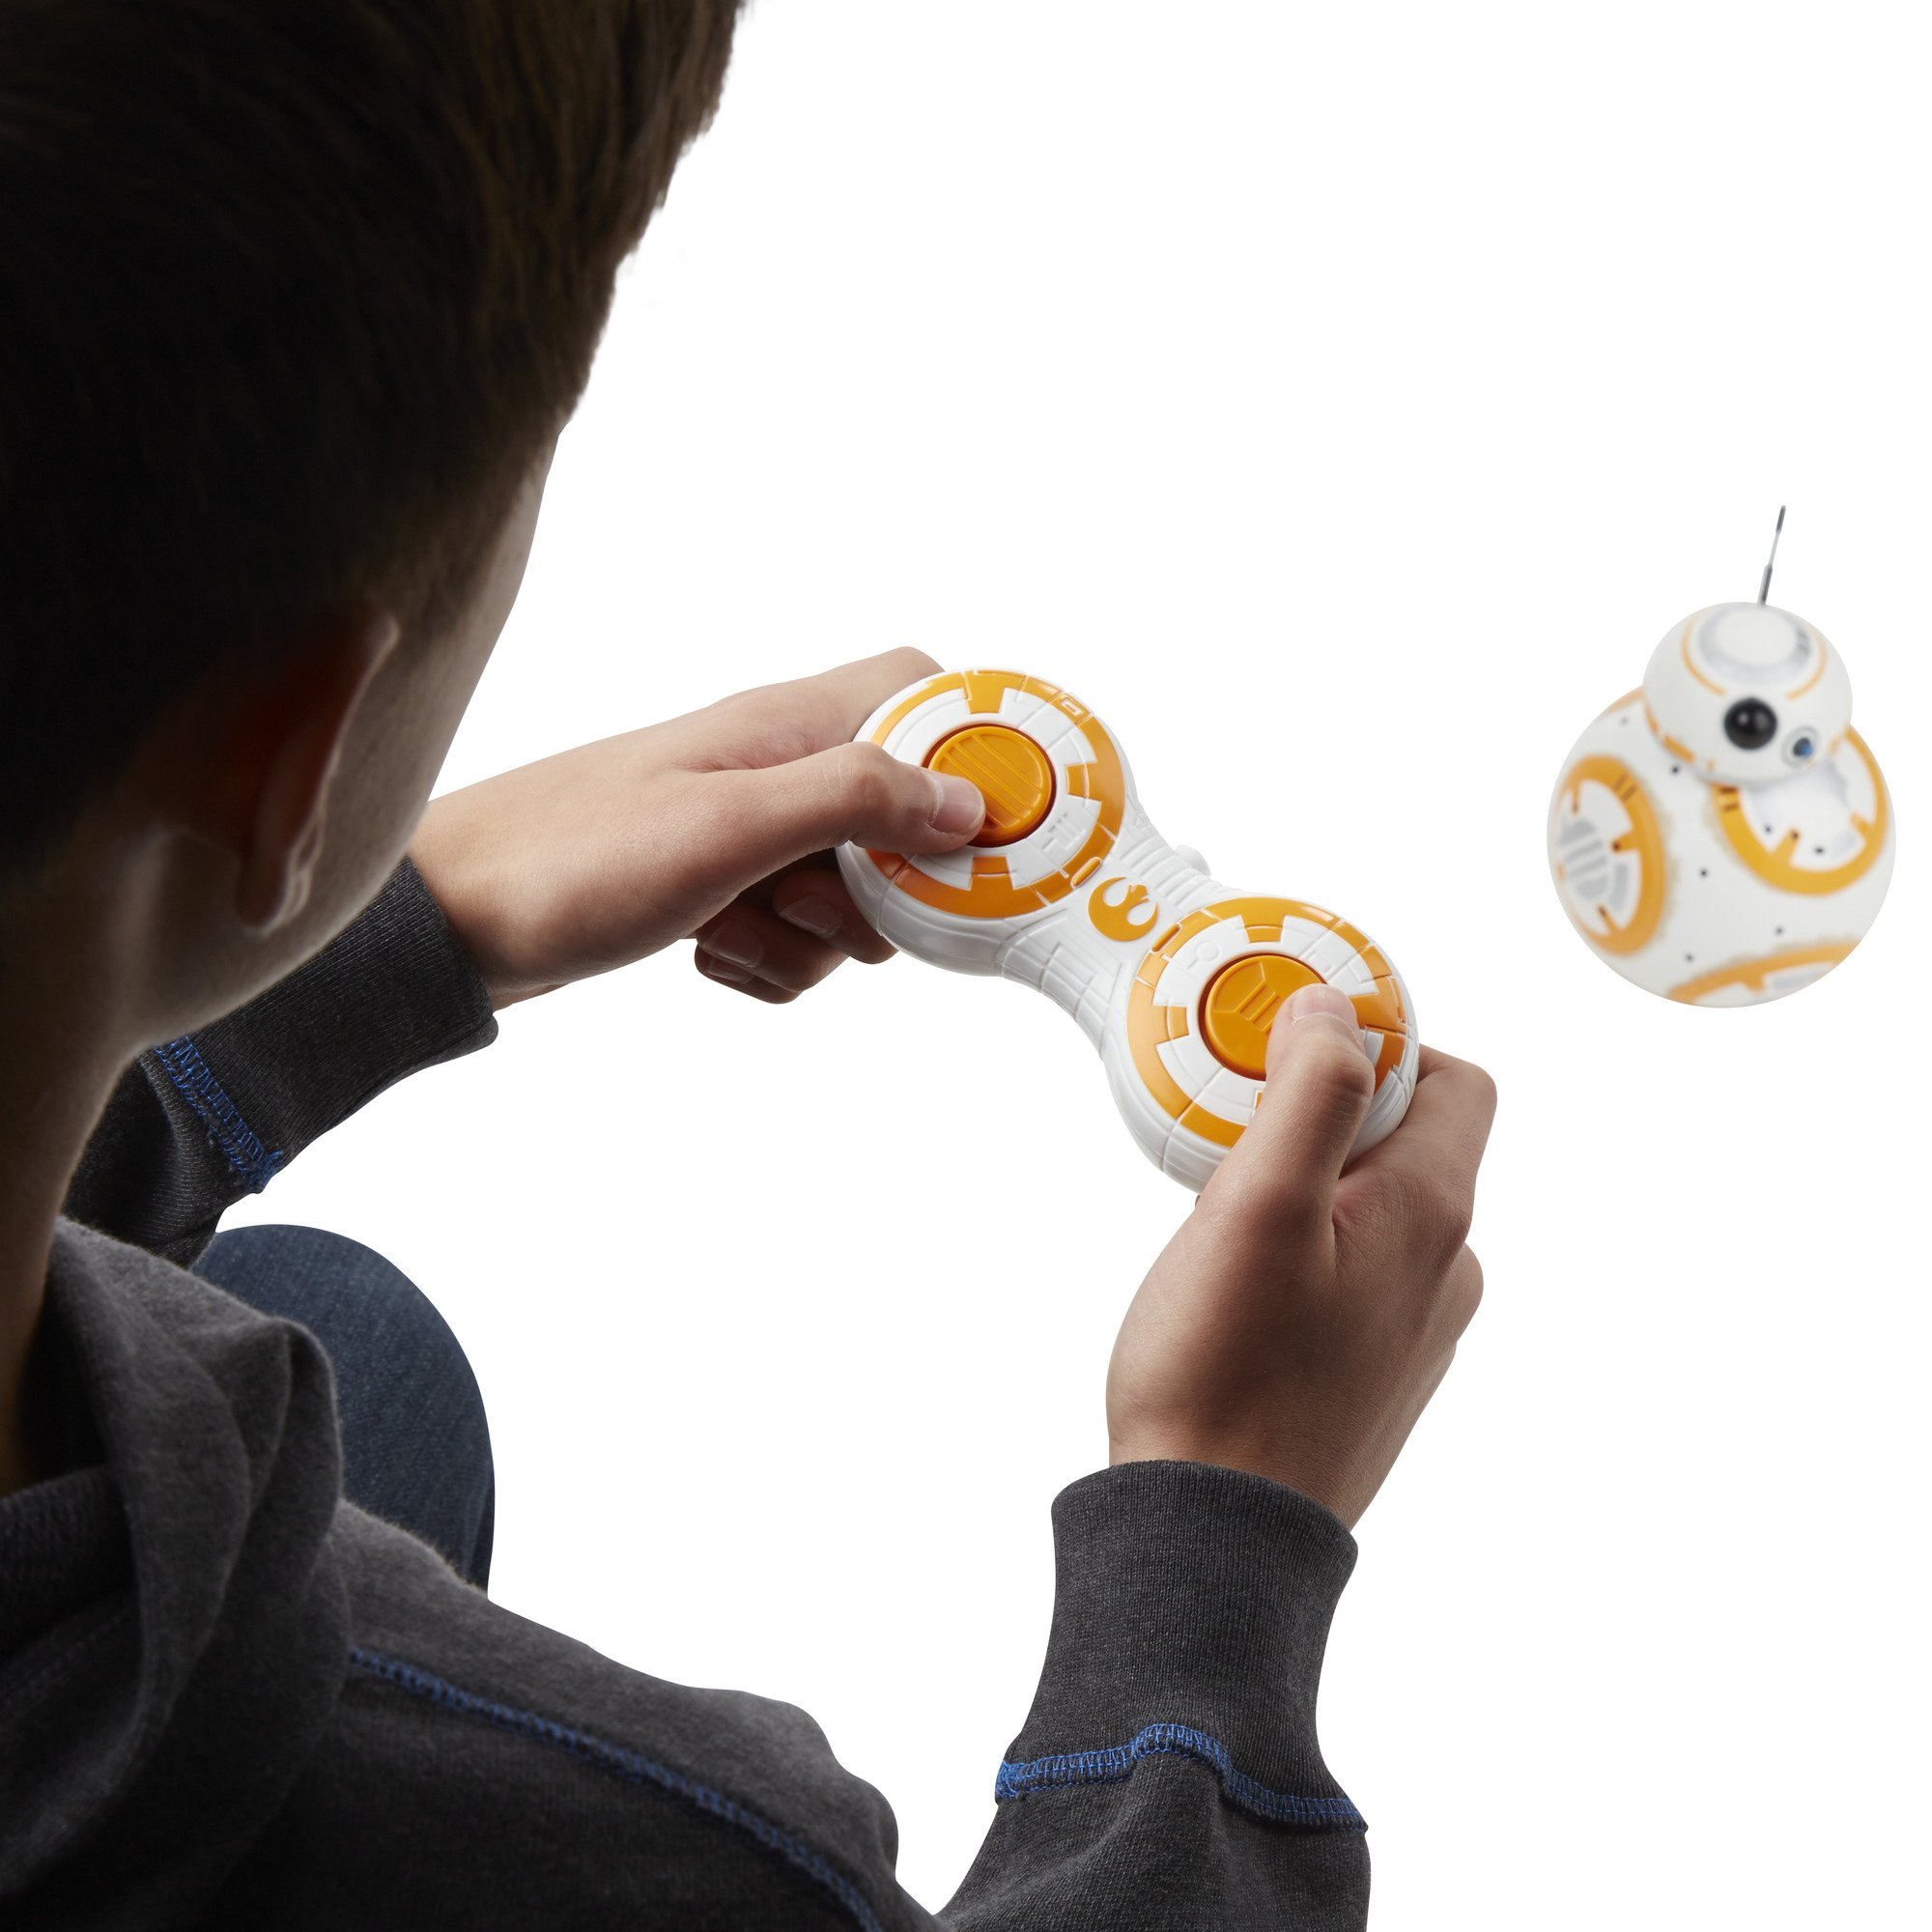 Star Wars The Force Awakens RC BB-8 by Star Wars (Image #5)